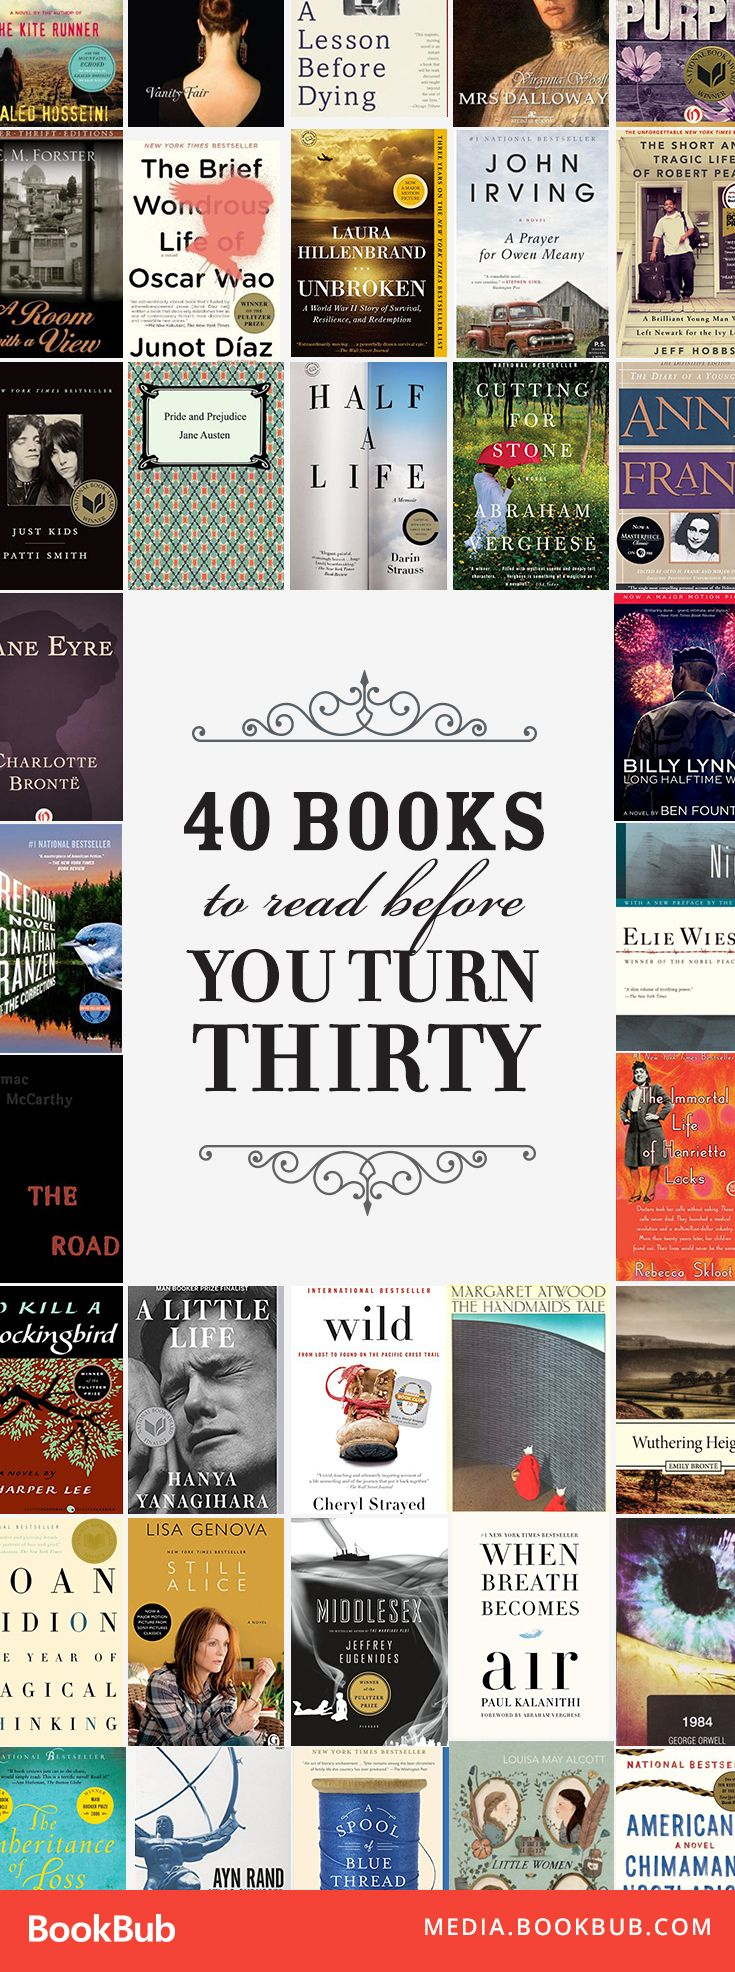 Looking for books to read in your 20s? check out our list of must-read books before you turn thirty. From inspirational memoirs to thought-provoking modern fiction, these books are worth a read. 5